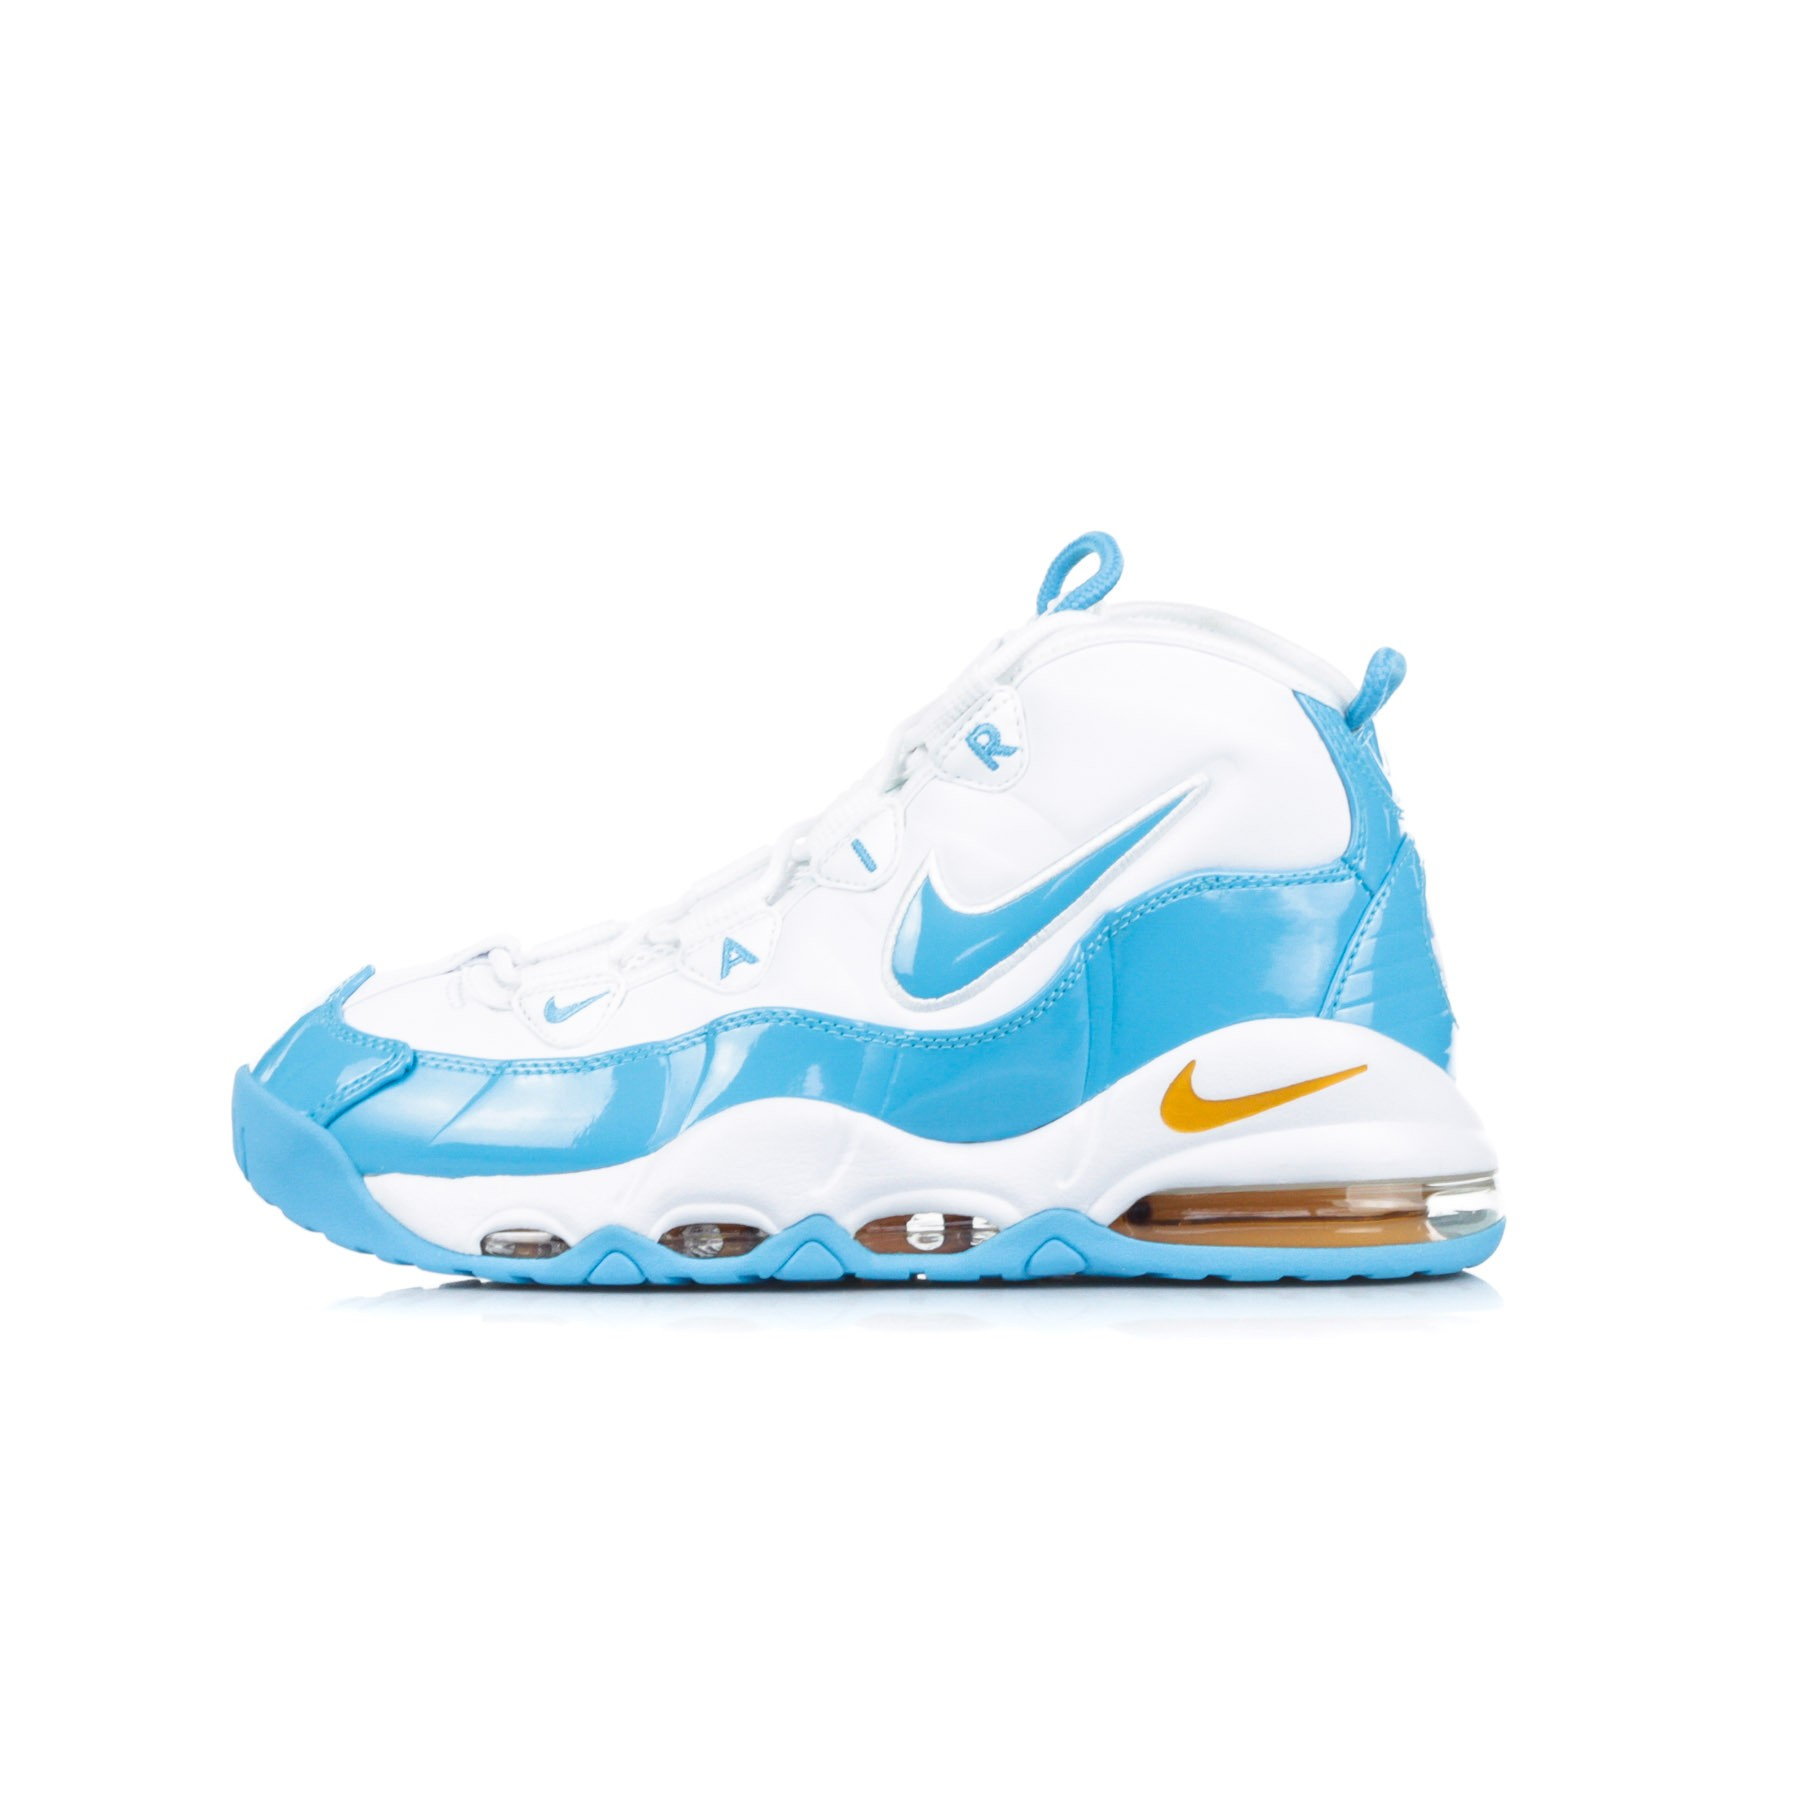 Nike Air Max Uptempo 95 White Red Black